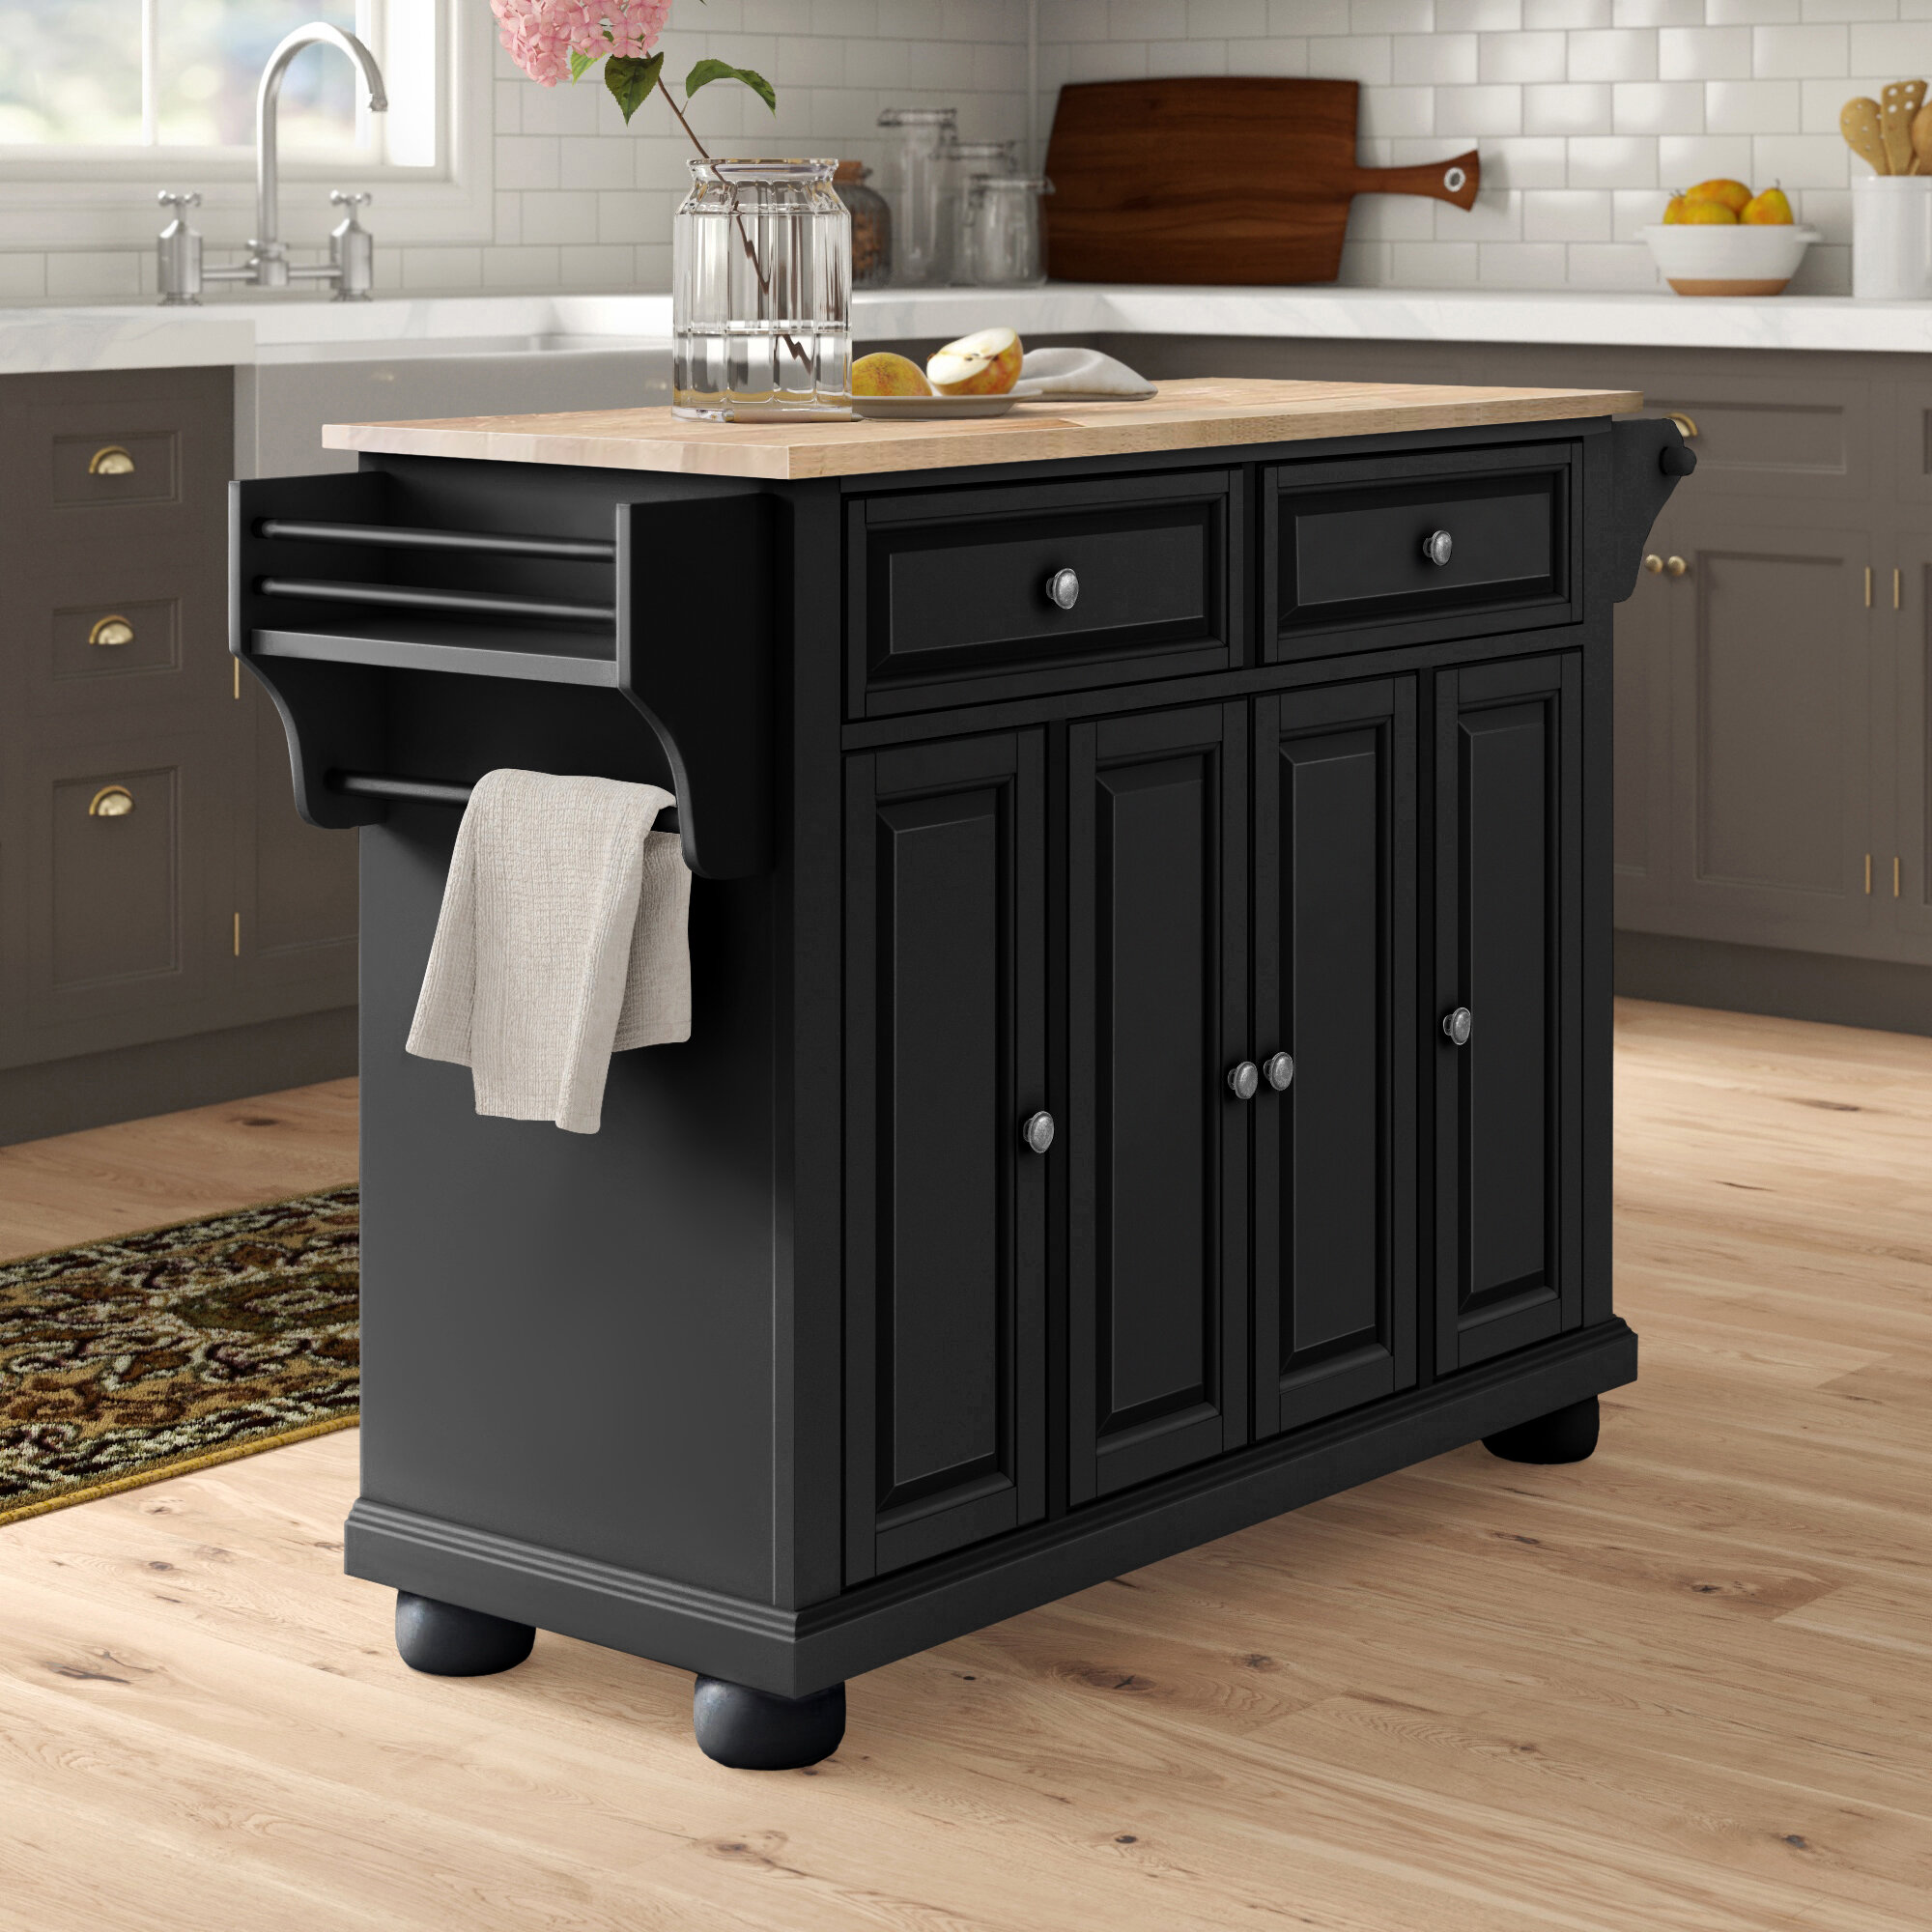 Kitchen Islands Carts Up To 55 Off Through 12 26 Wayfair